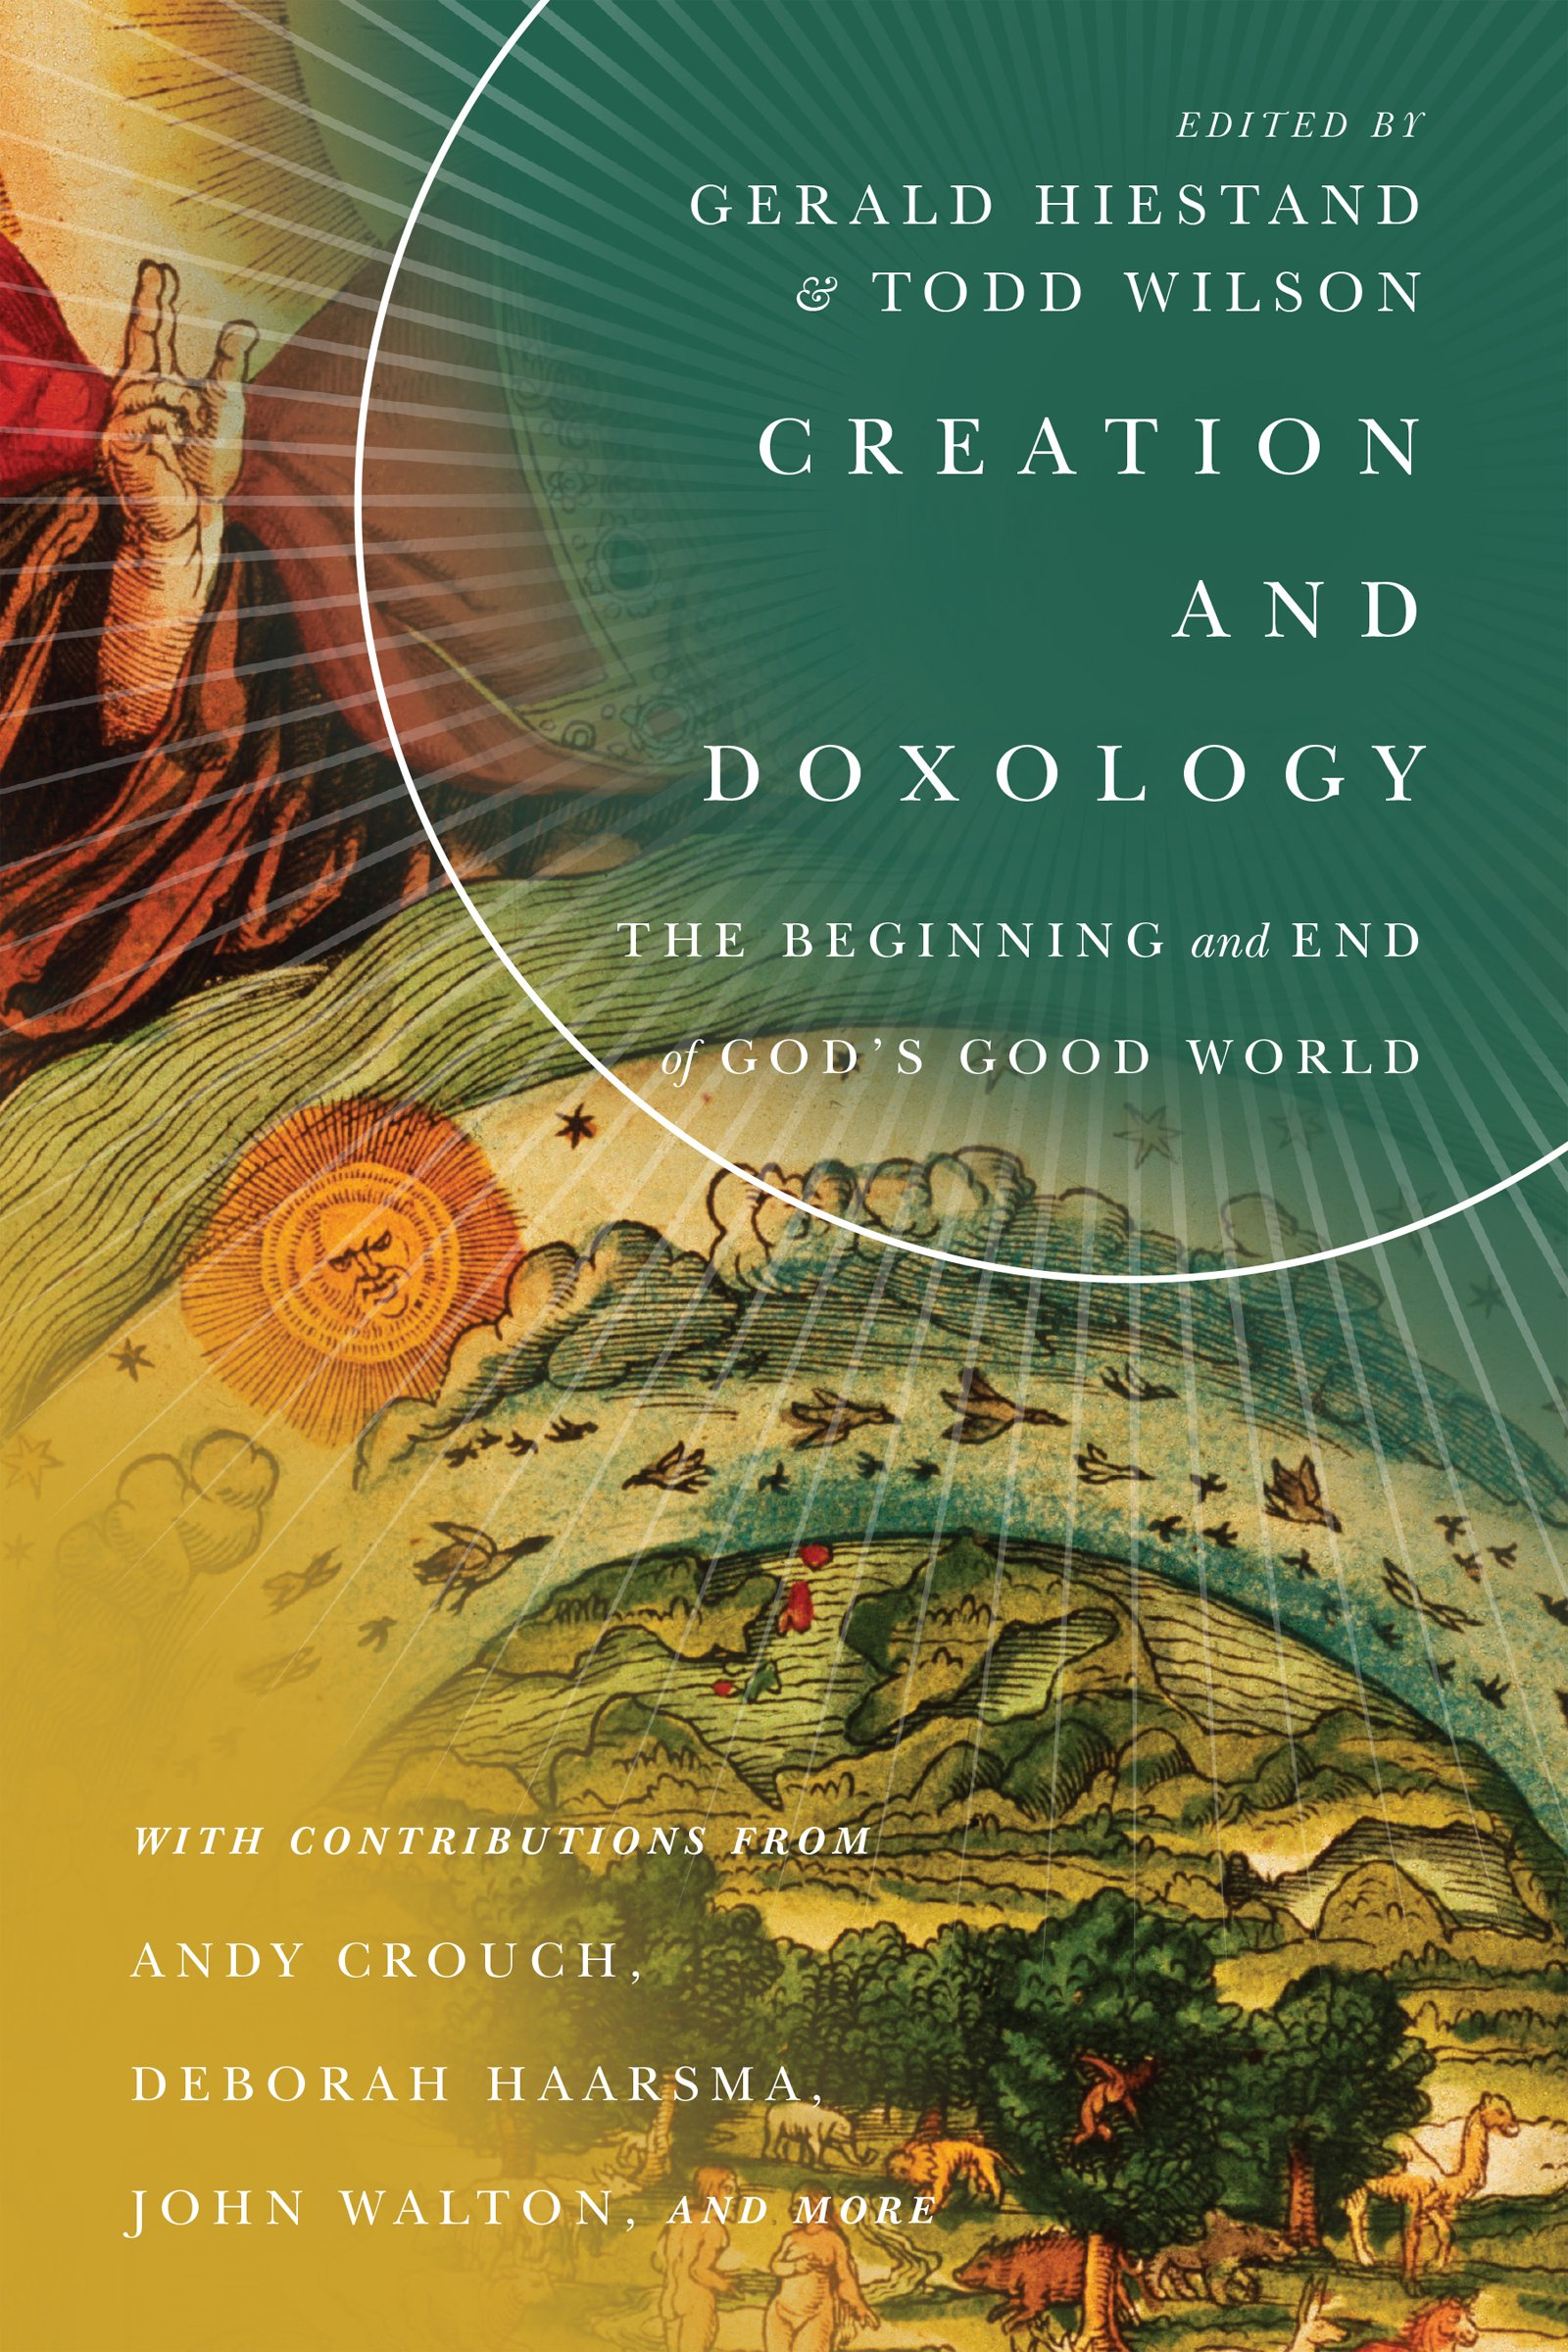 Creation and Doxology: The Beginning and End of God's Good